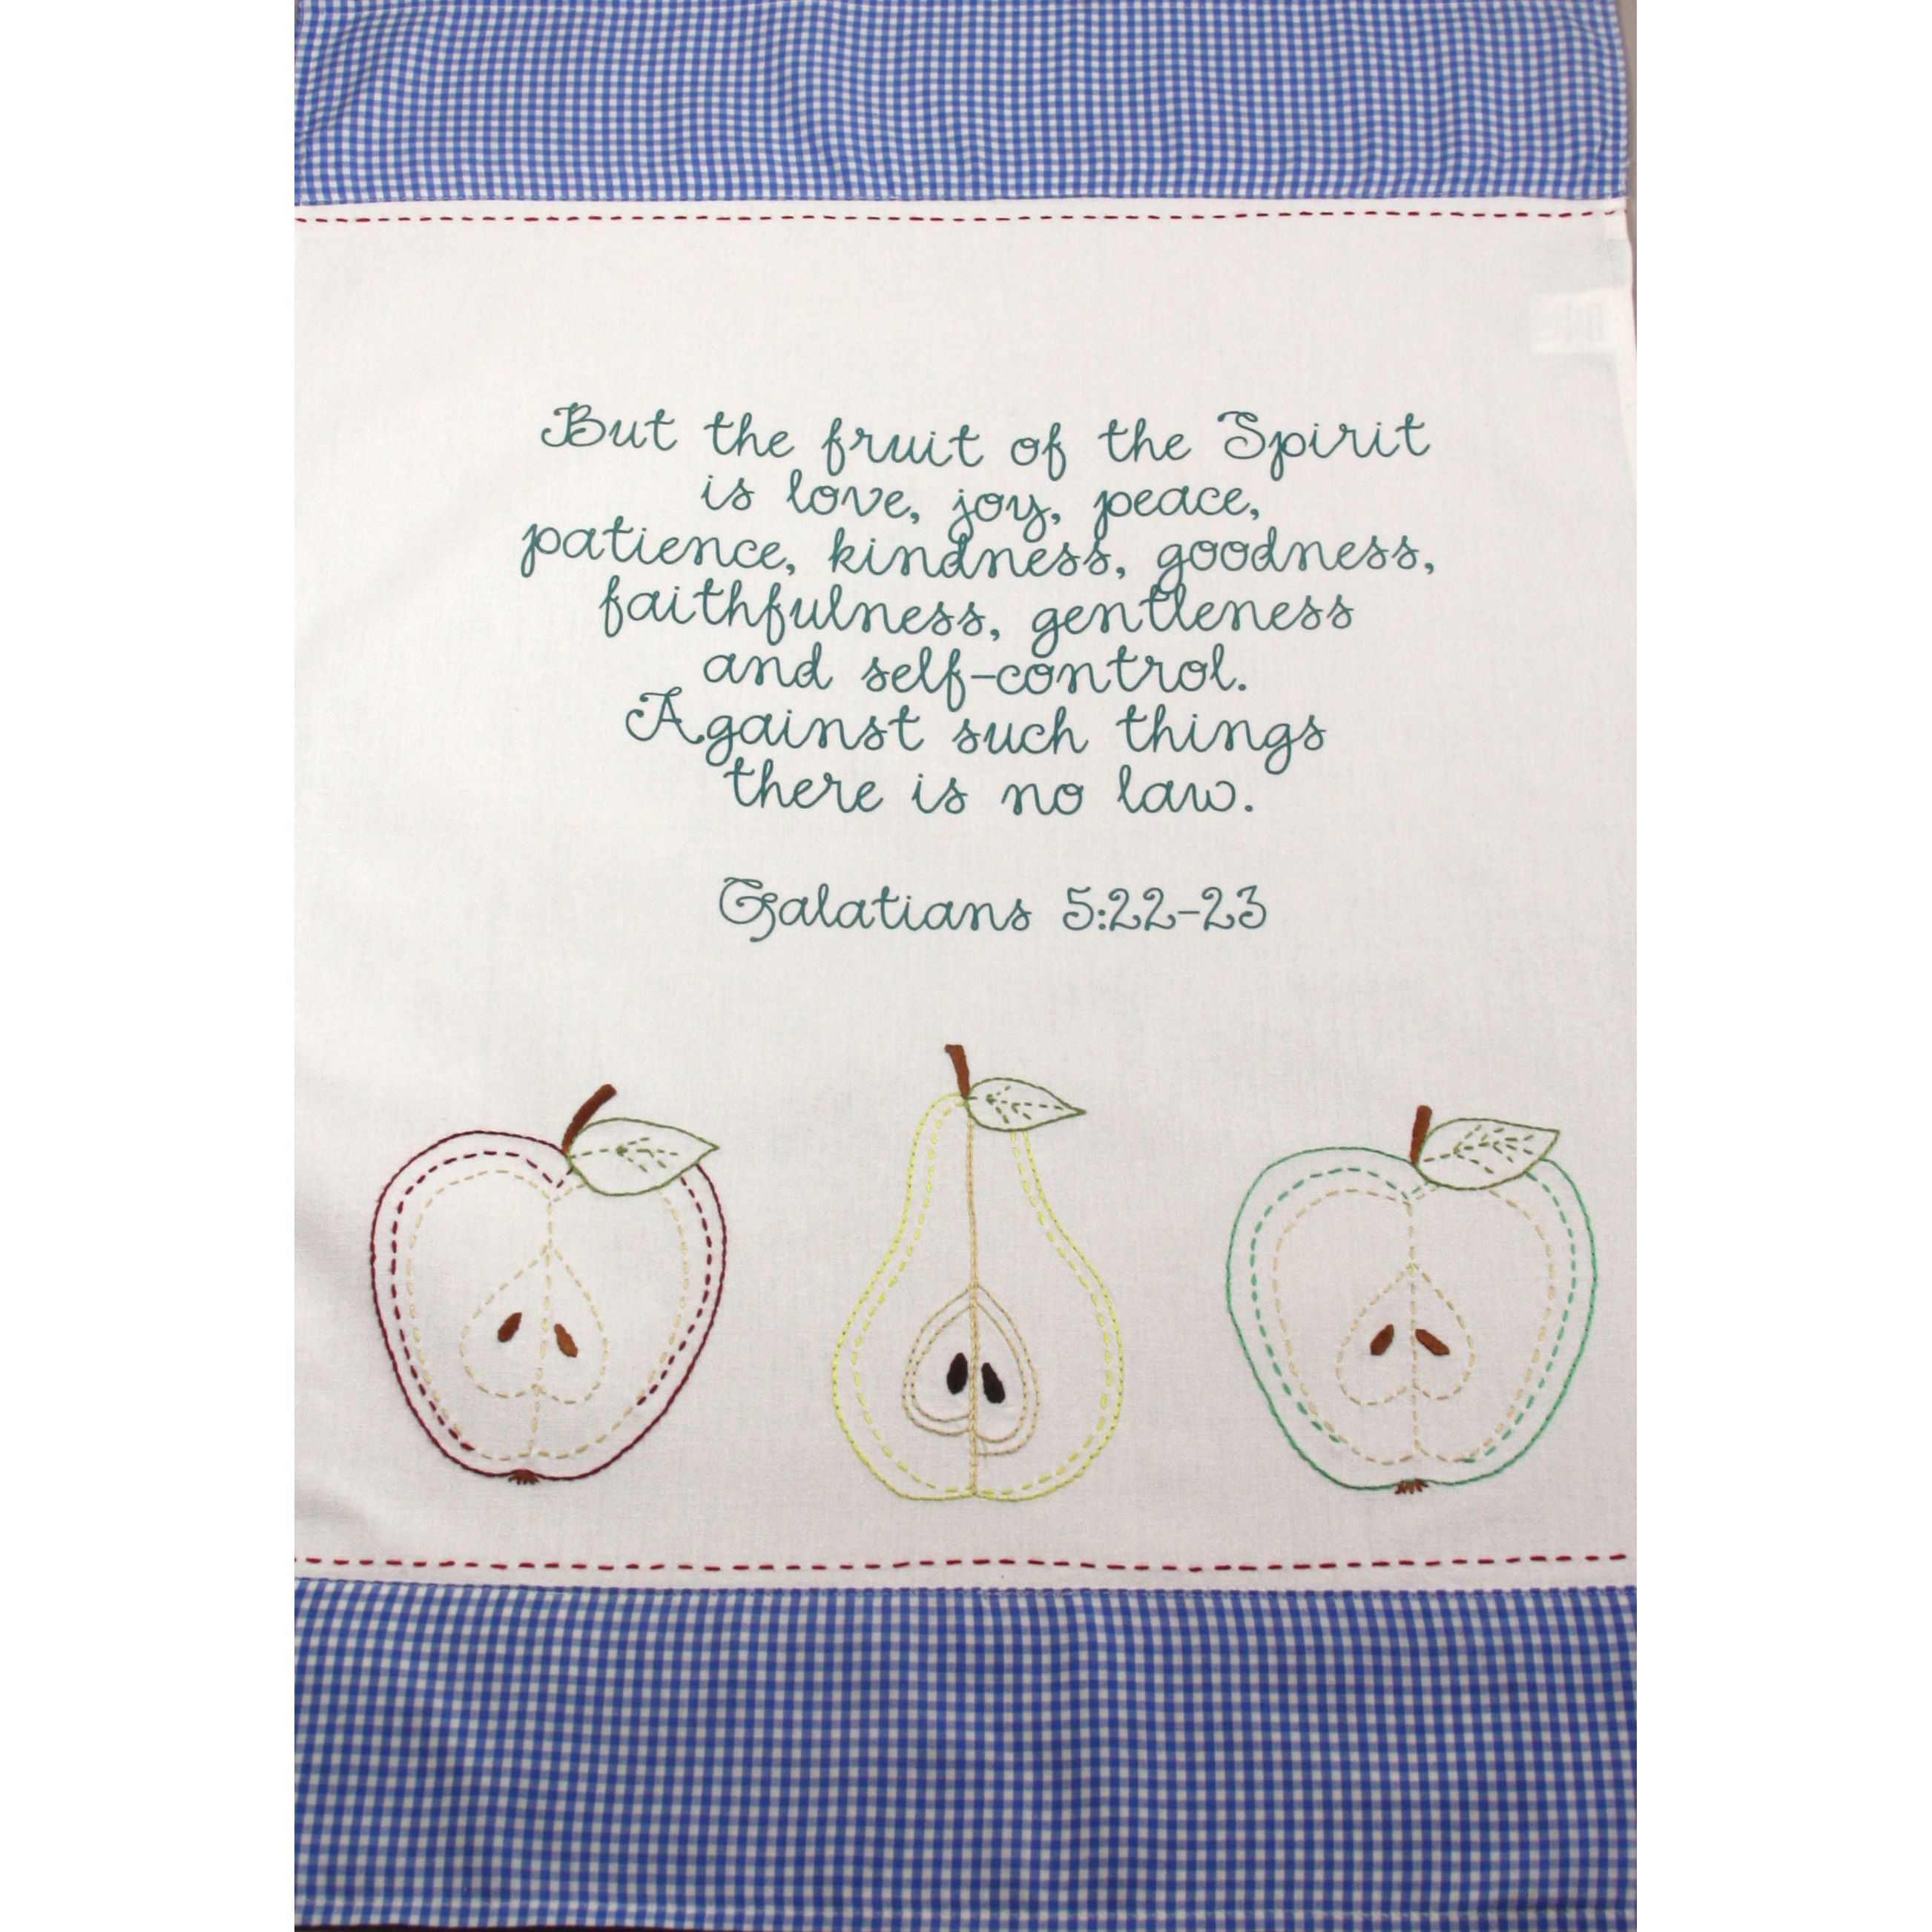 Add a touch of whimsy to your home with this Fruit of the Spirit bible verse kitchen towel set of two. Hand-embroidered details and blue checkered pattern complement the screen print letters.